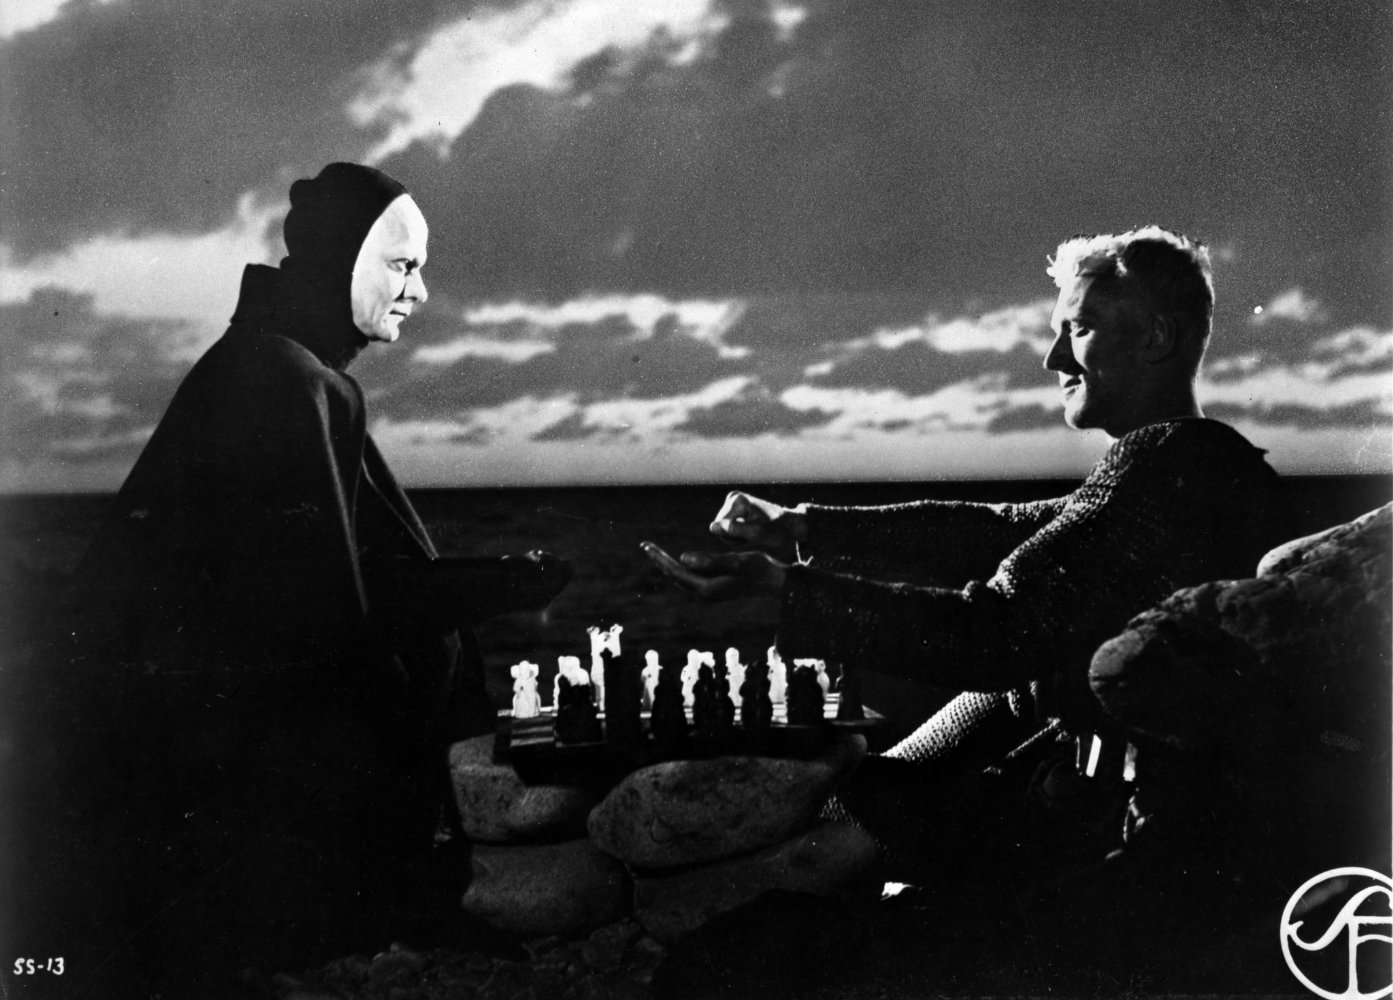 The Seventh Seal / Yedinci Mühür (1957)